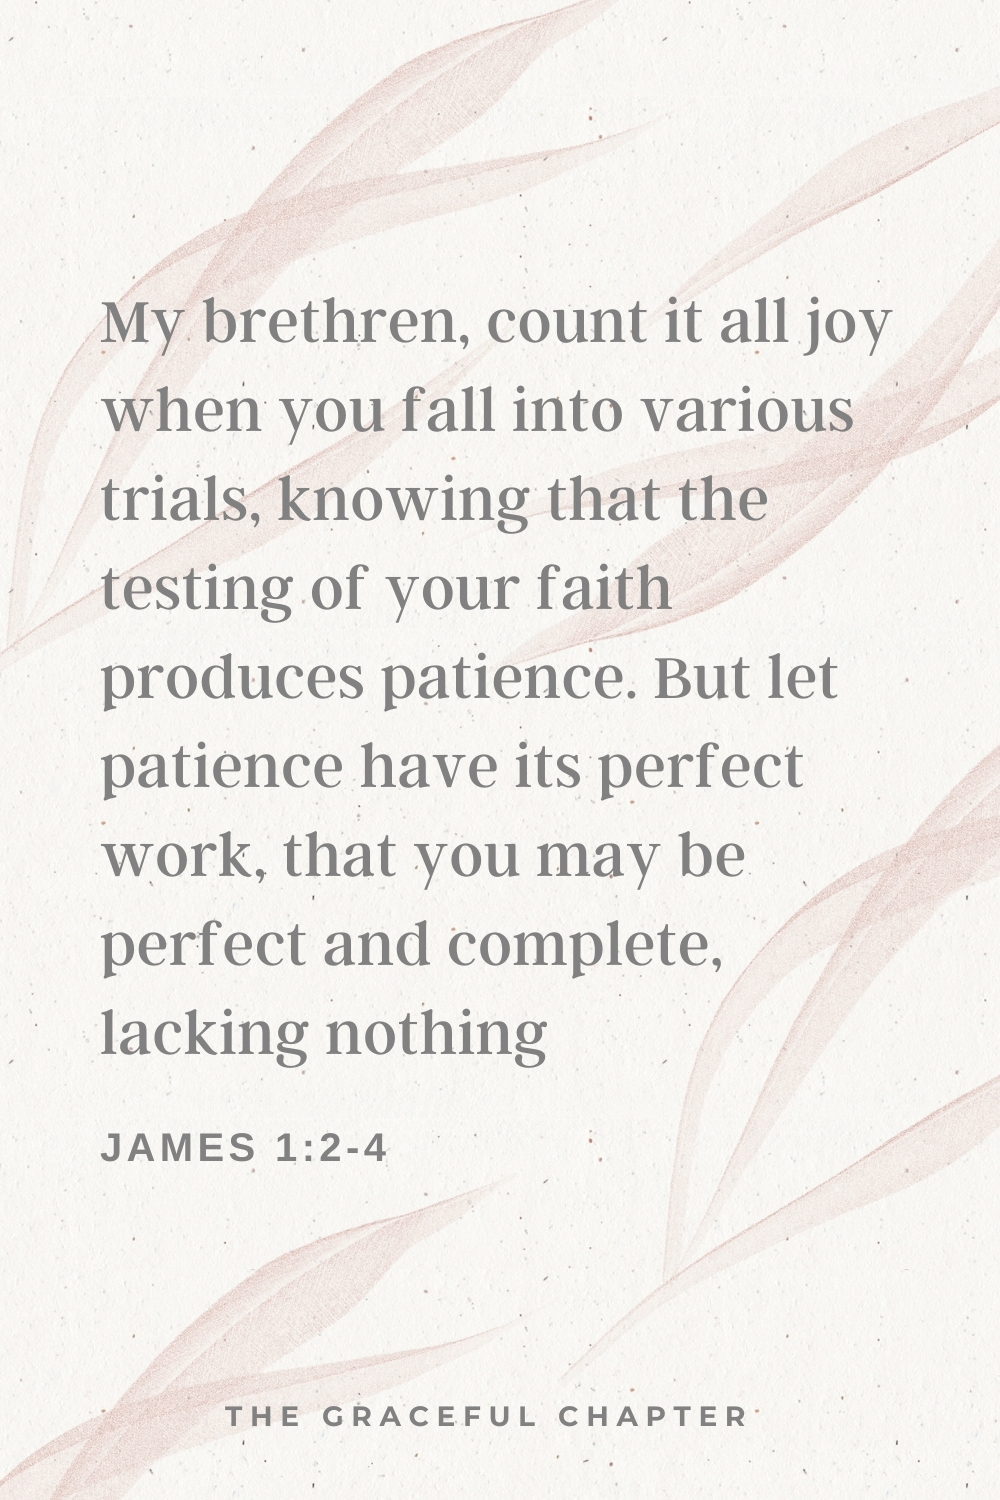 My brethren, count it all joy when you fall into various trials, knowing that the testing of your faith produces patience. But let patience have its perfect work, that you may be perfect and complete, lacking nothing. James 1:2-4